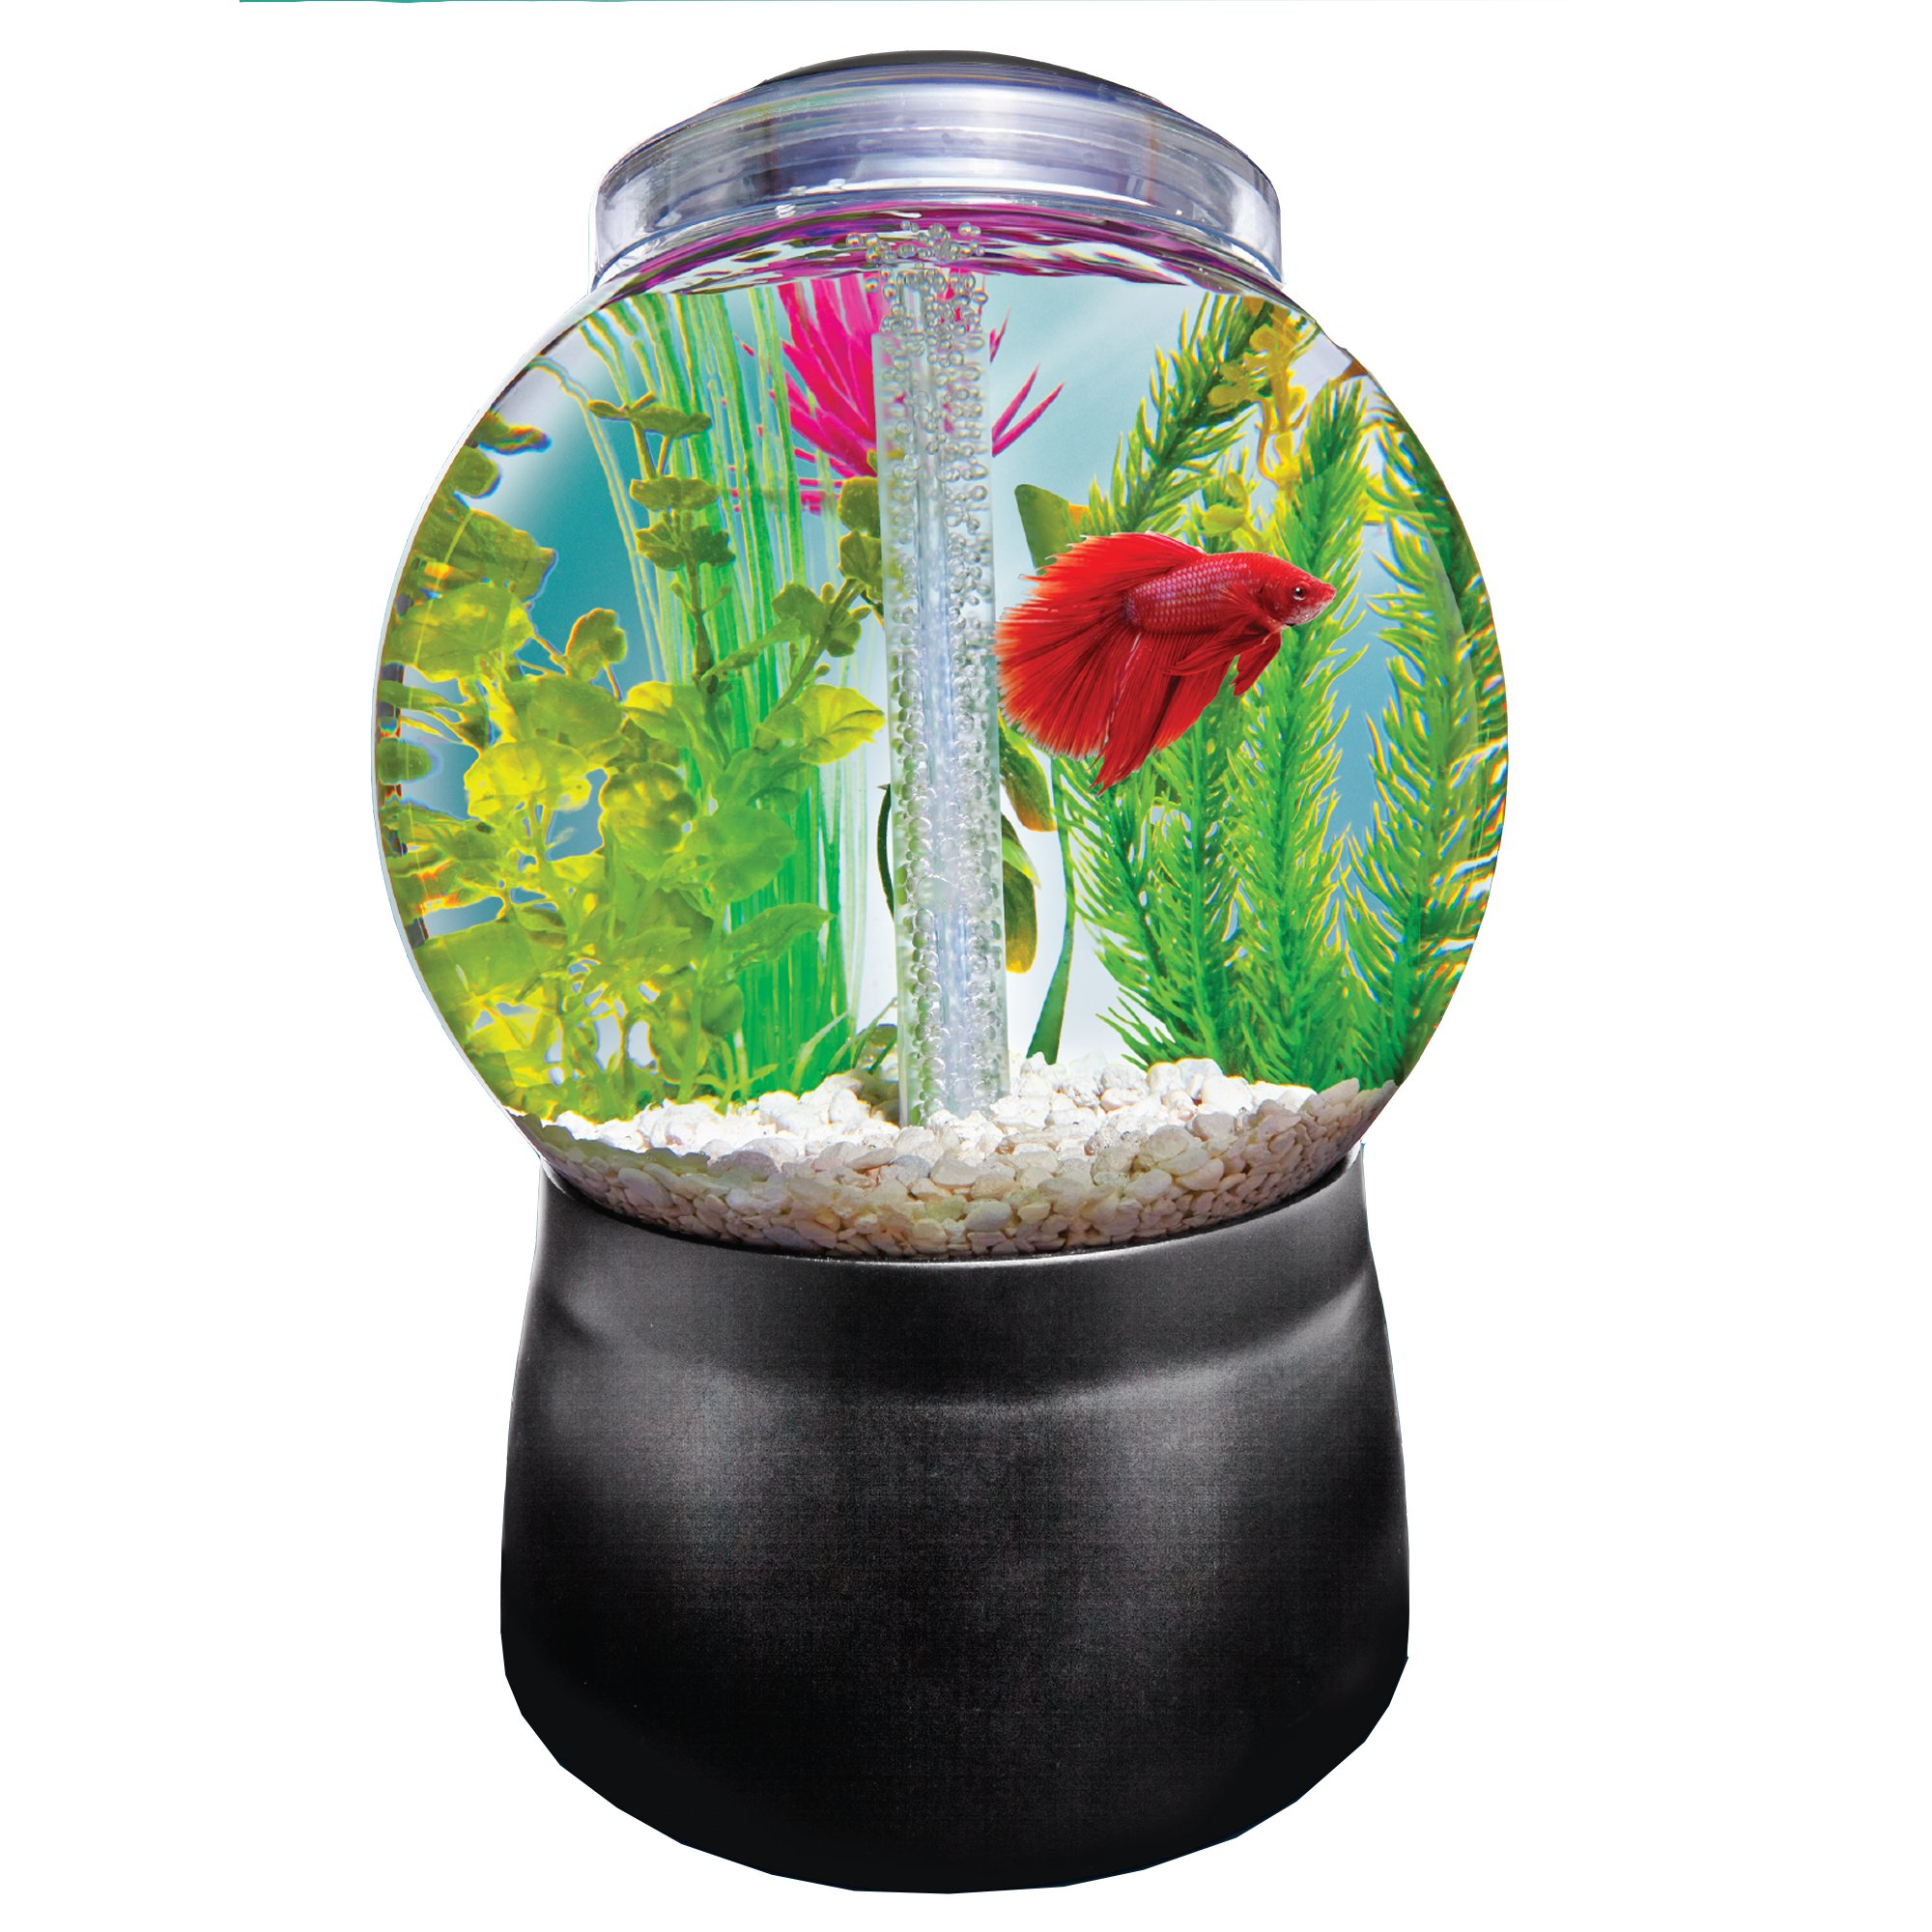 Imagitarium gumball freshwater aquarium petco for Betta fish tanks petco